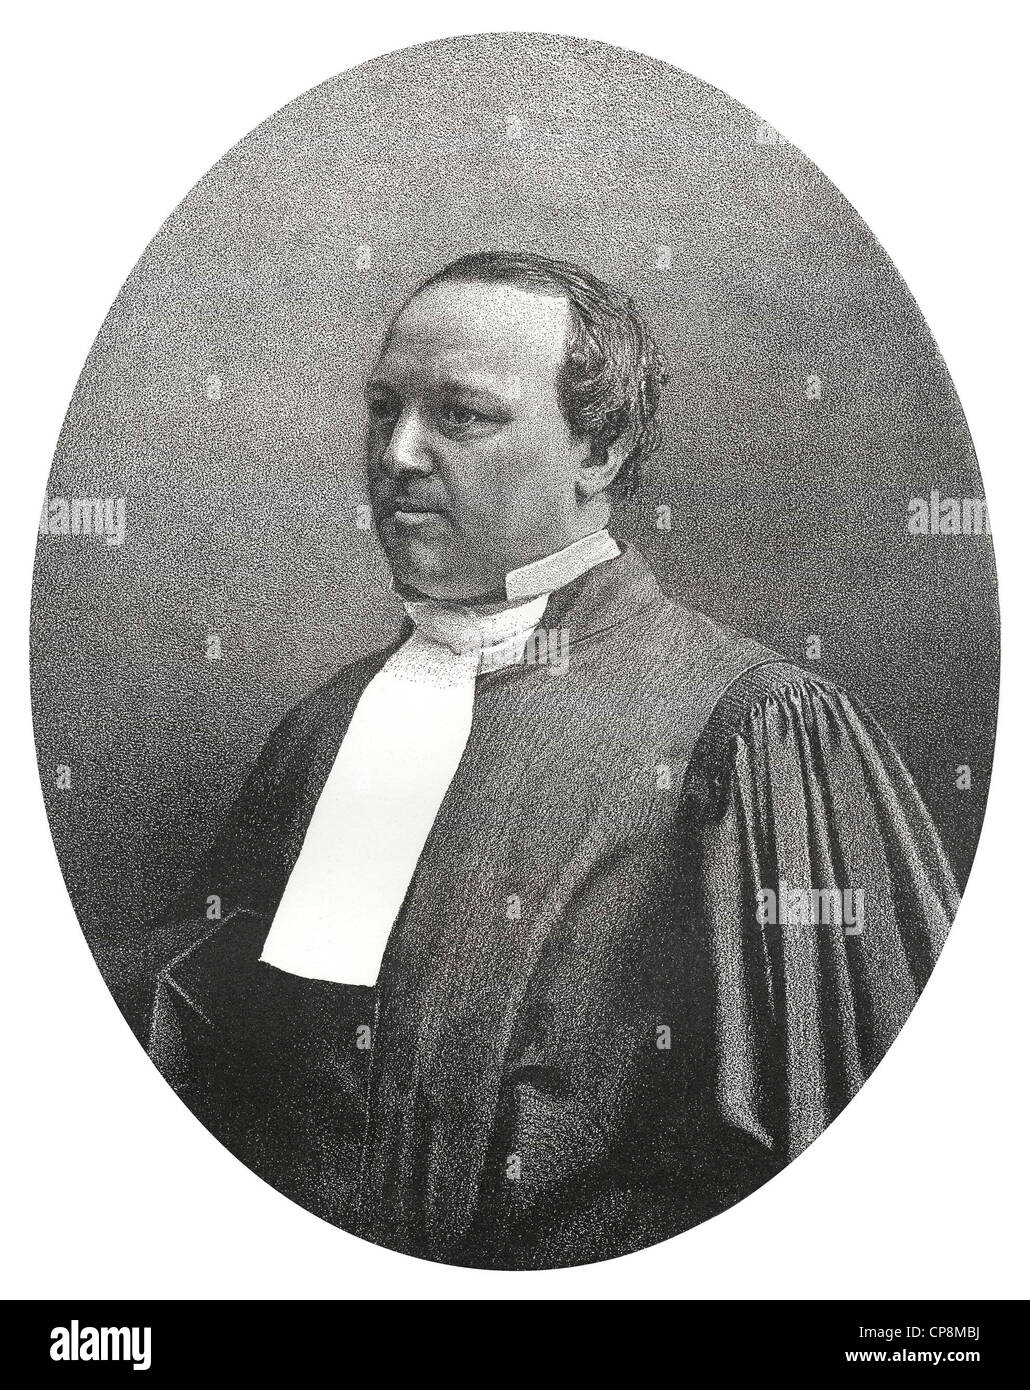 Charles Alexandre Lachaud, a French lawyer, Historic steel engraving from the 19th century, Historische Lithografie - Stock Image